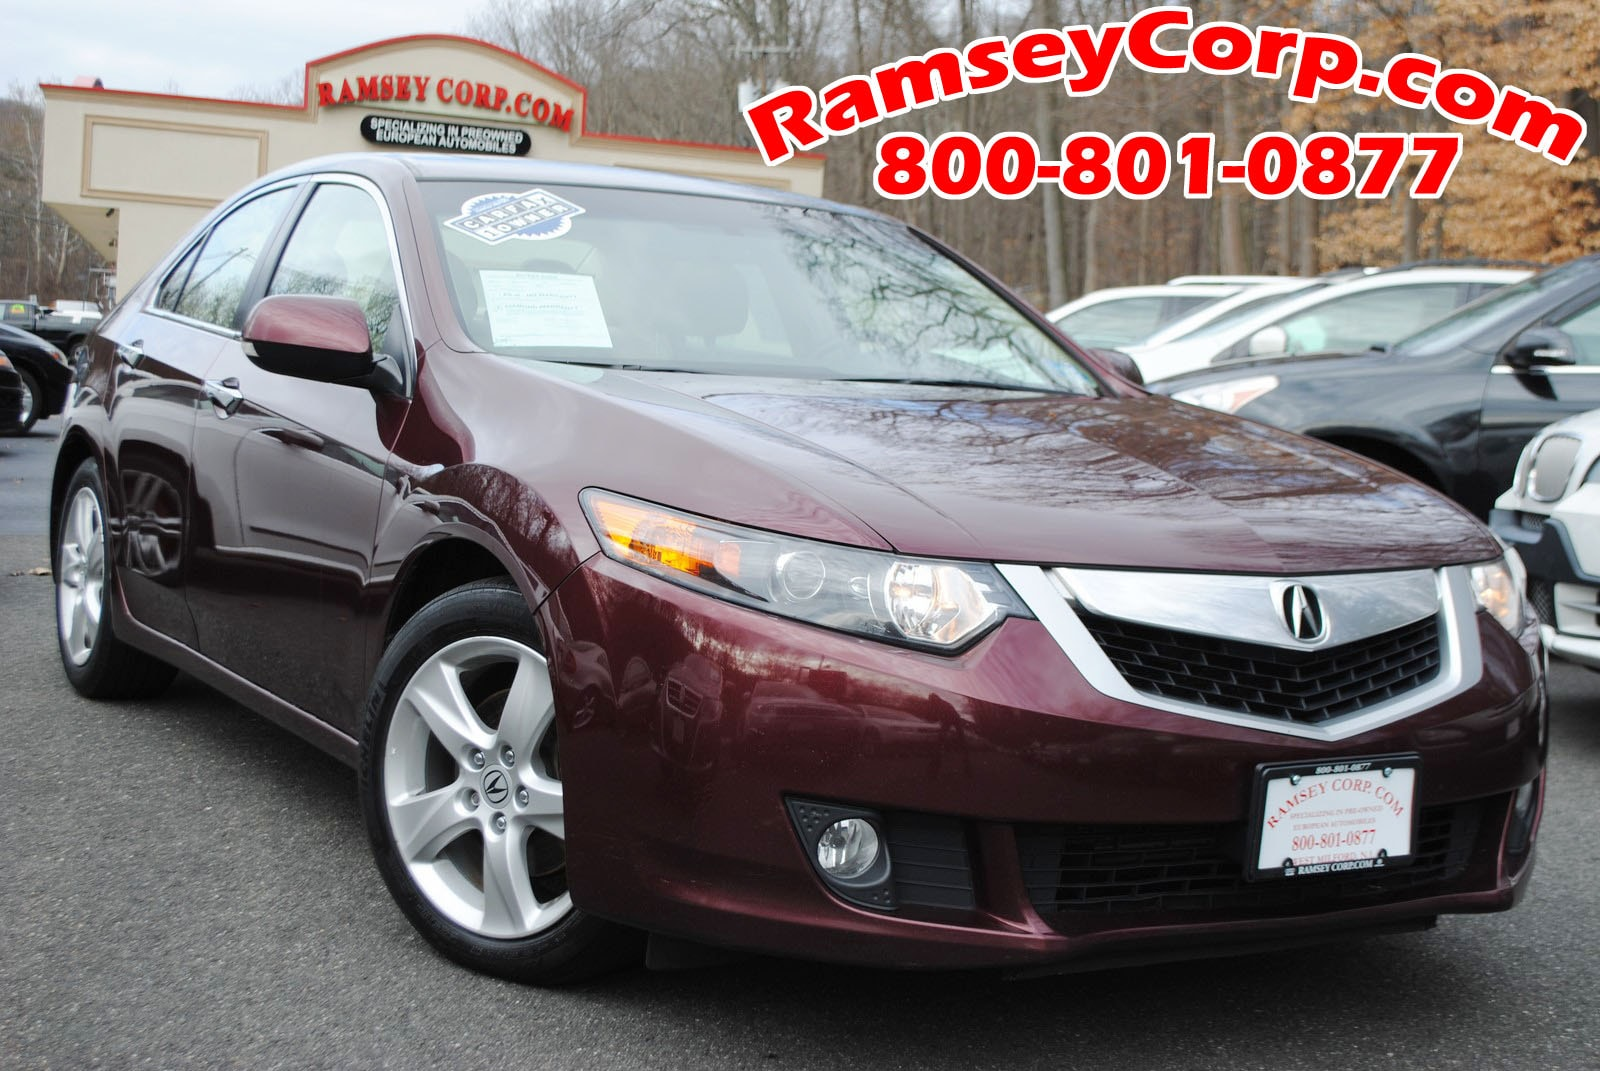 used 2010 acura tsx for sale west milford nj rh ramseycorp com Acura TSX 2010 Features Acura TSX 2010 Features